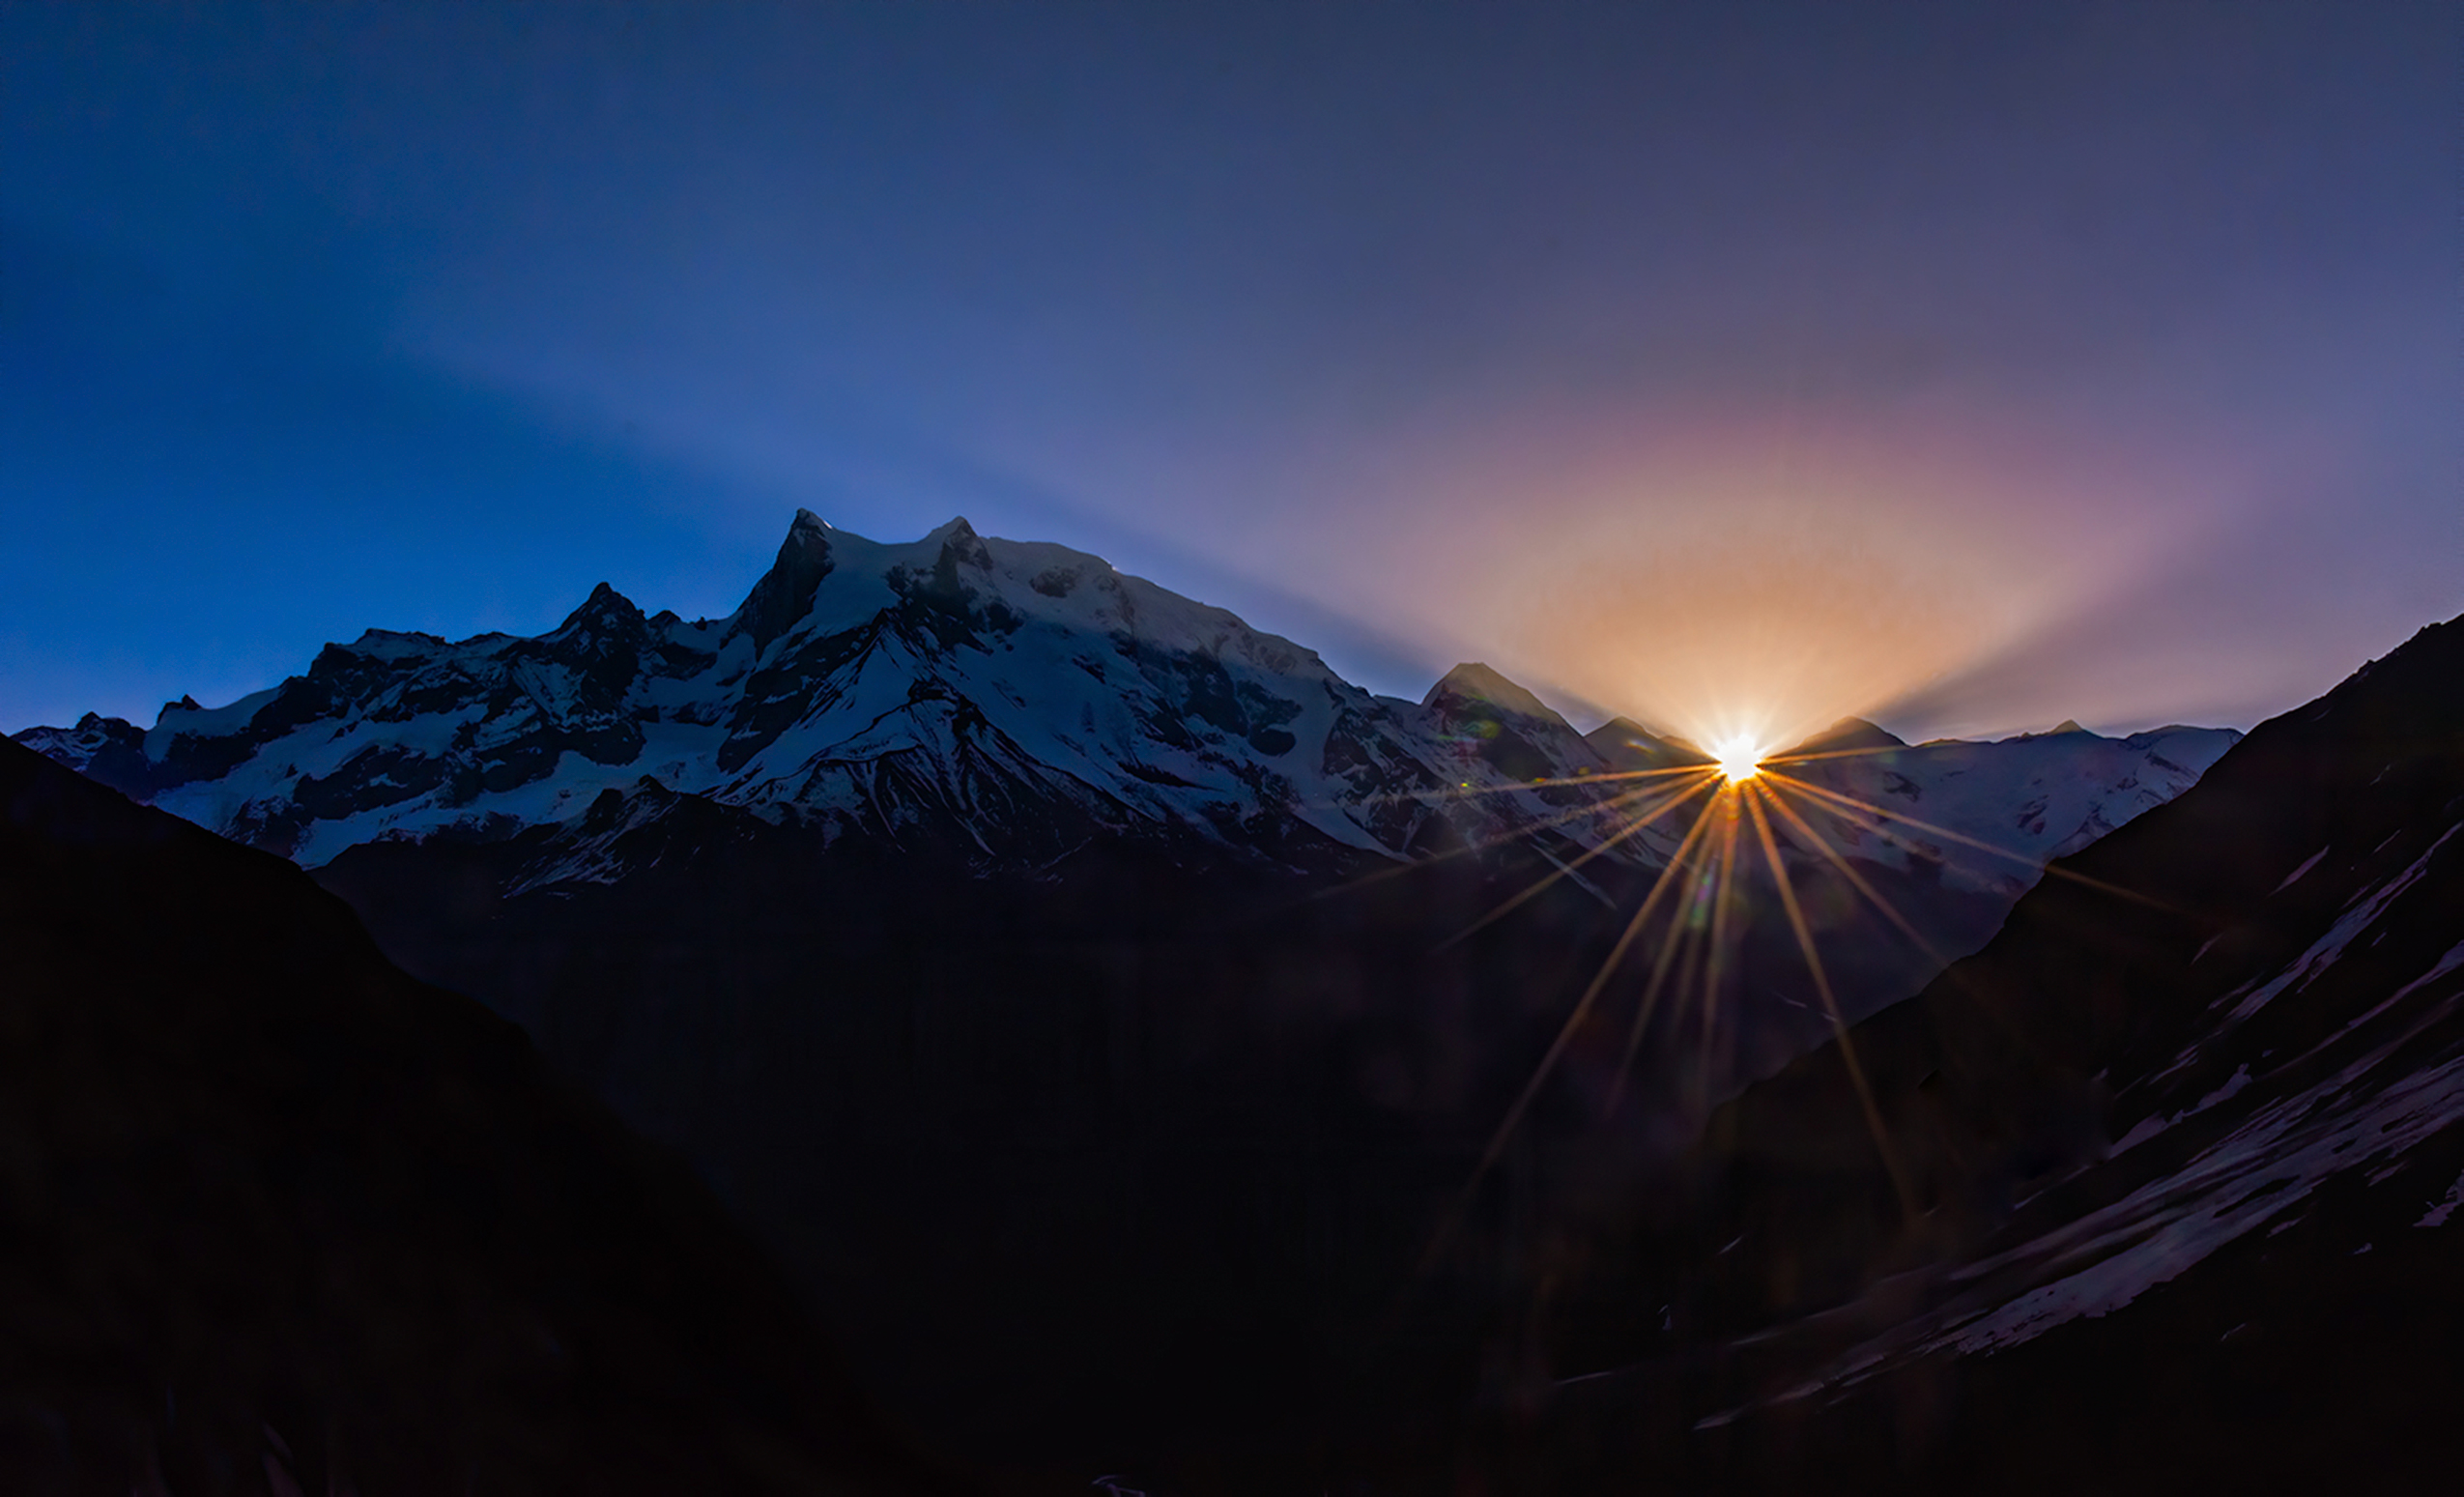 sunrising behind the mountains